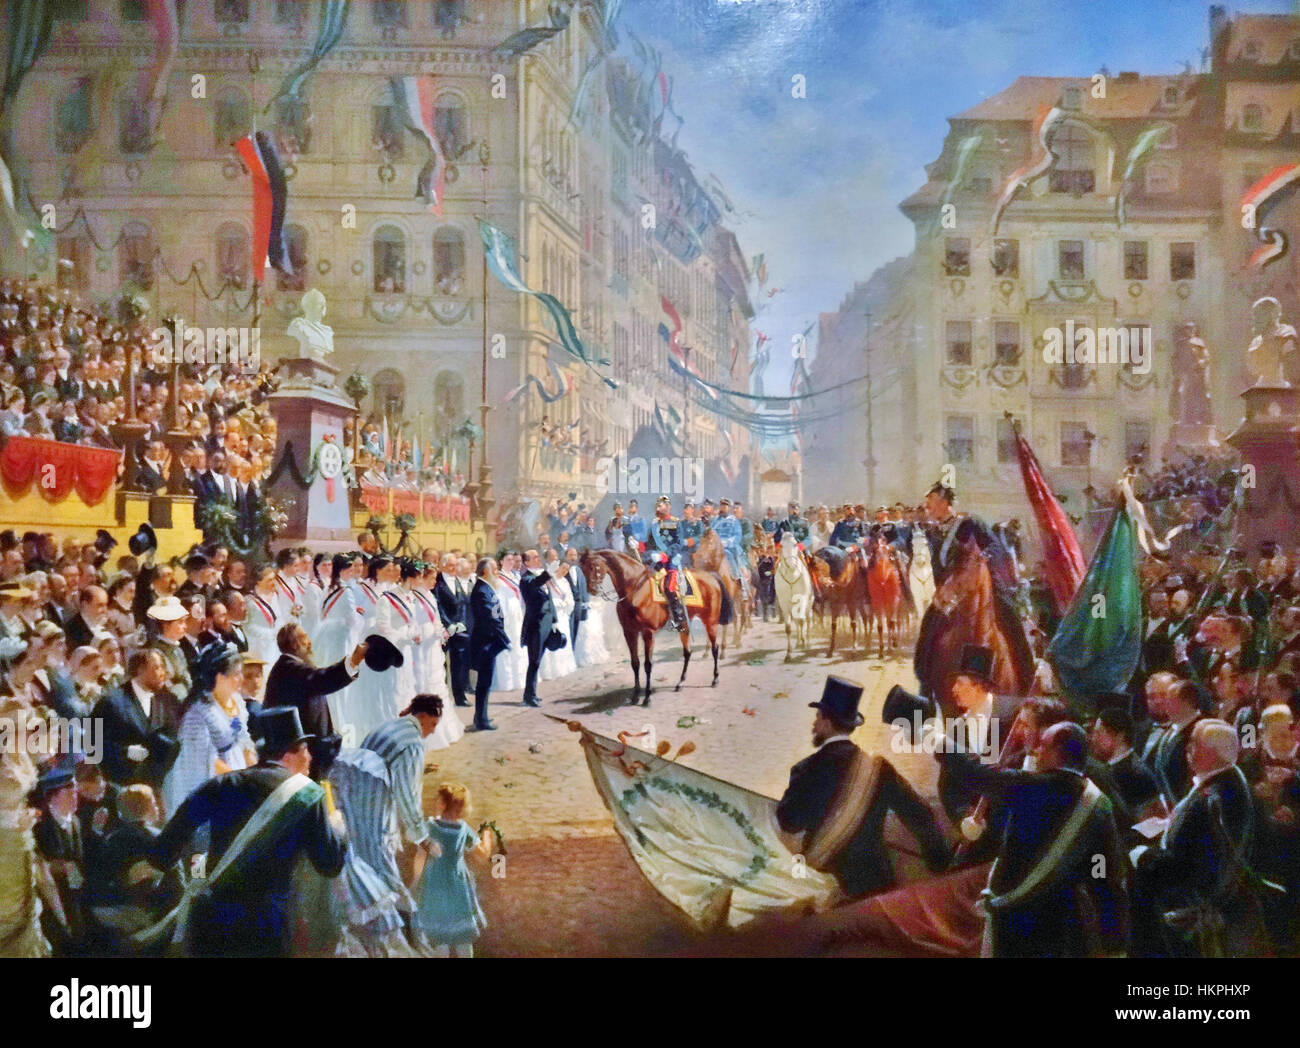 FRANCO-PRUSSIAN WAR 1870. Prince Albert of Saxony celebrates the Prussian victory at a parade in Dresden in July - Stock Image